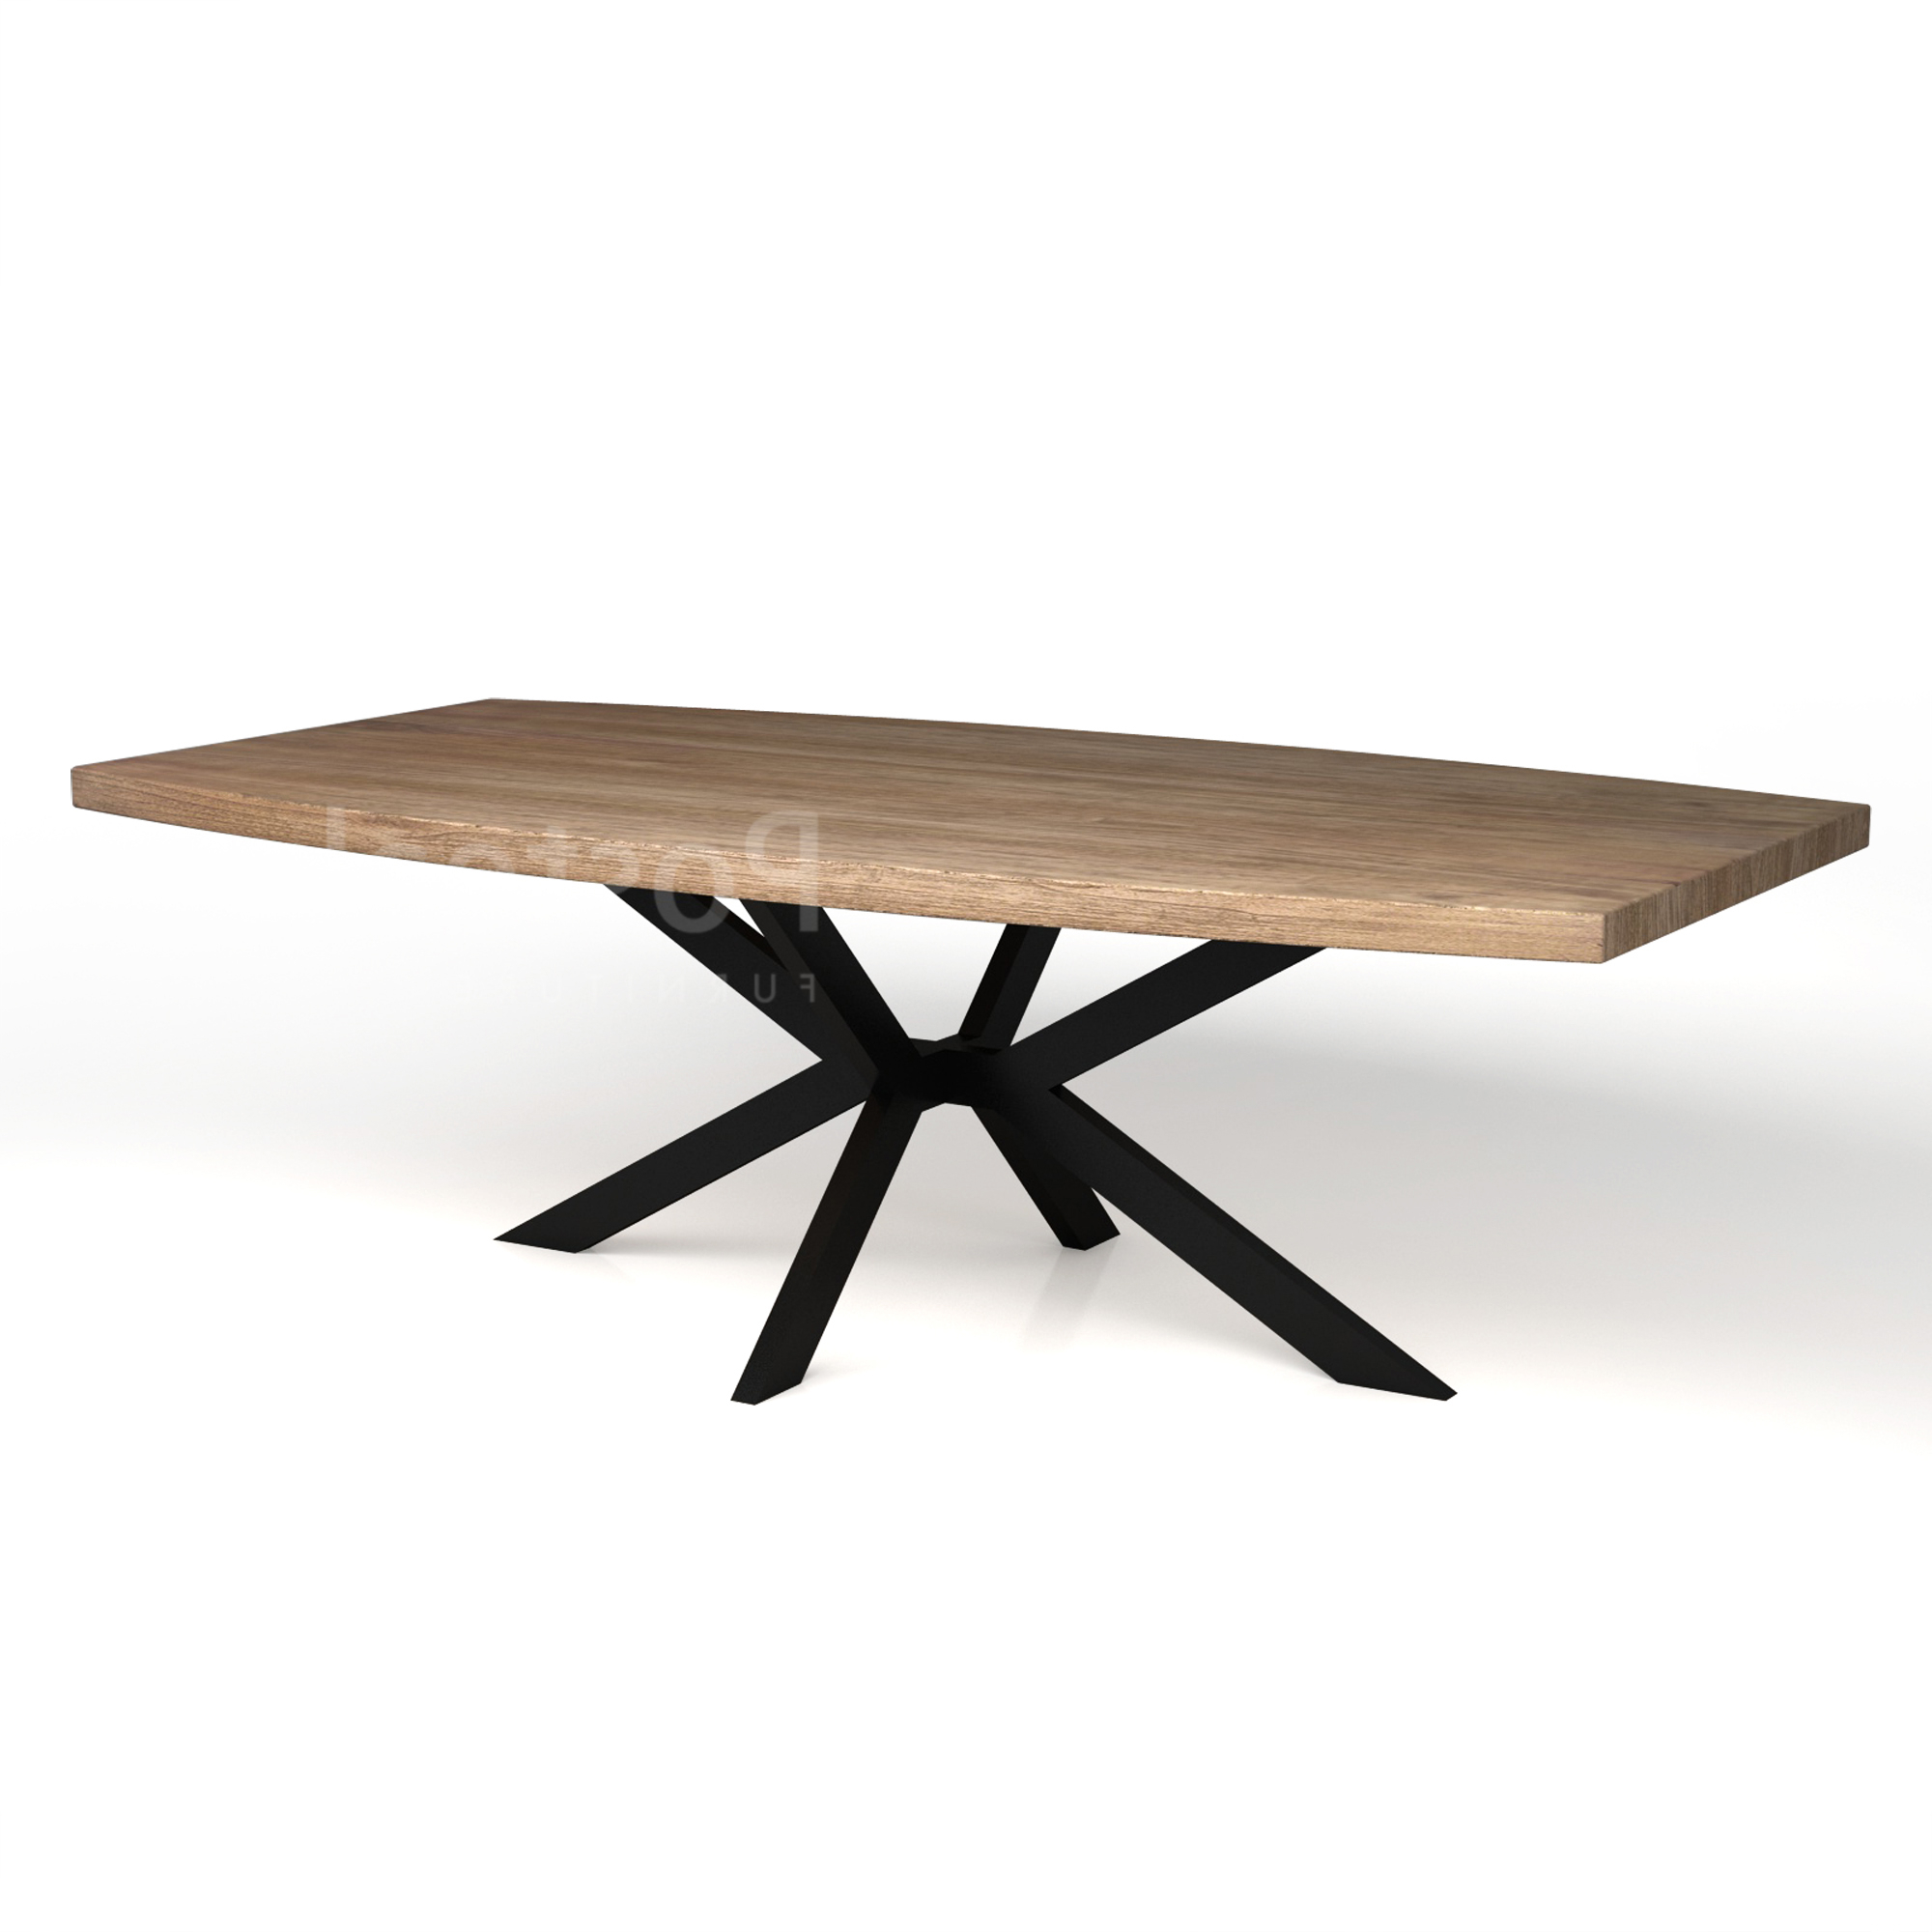 Iron Wood Dining Tables With Metal Legs intended for Newest Modern Dining Table - Iron Cross Legs